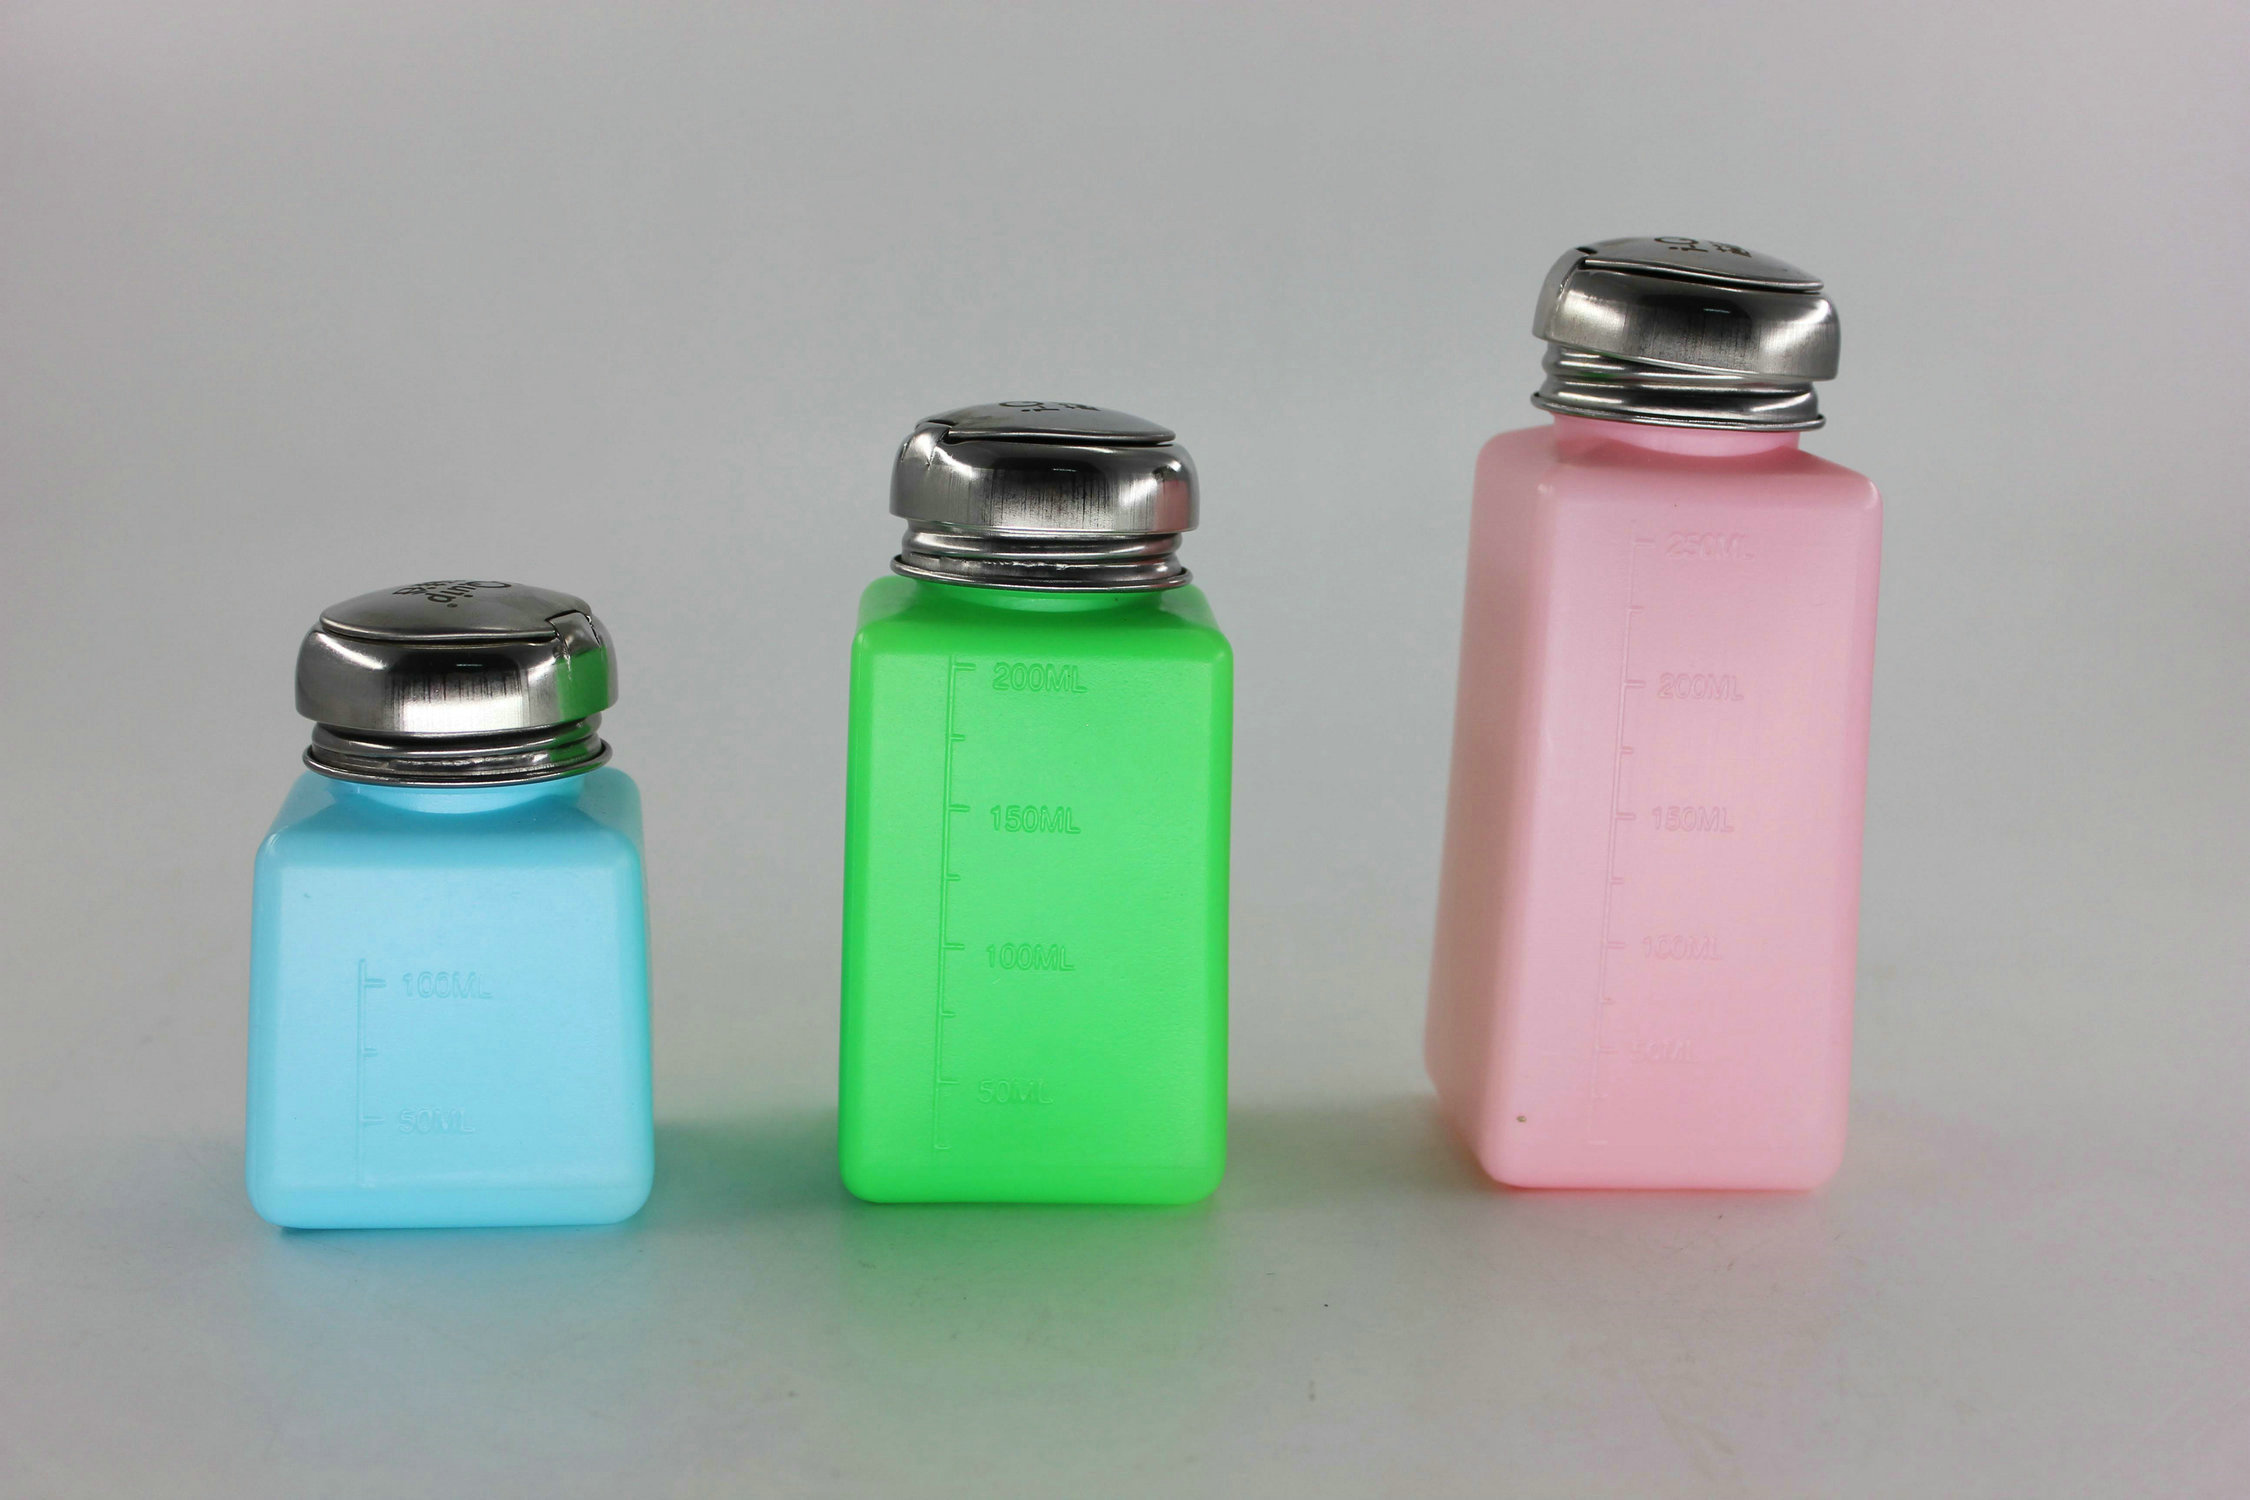 Core siliconvalley D6543 spherocrystals blue/pink/green antistatic alcohol bottles, ordinary plum nozzle